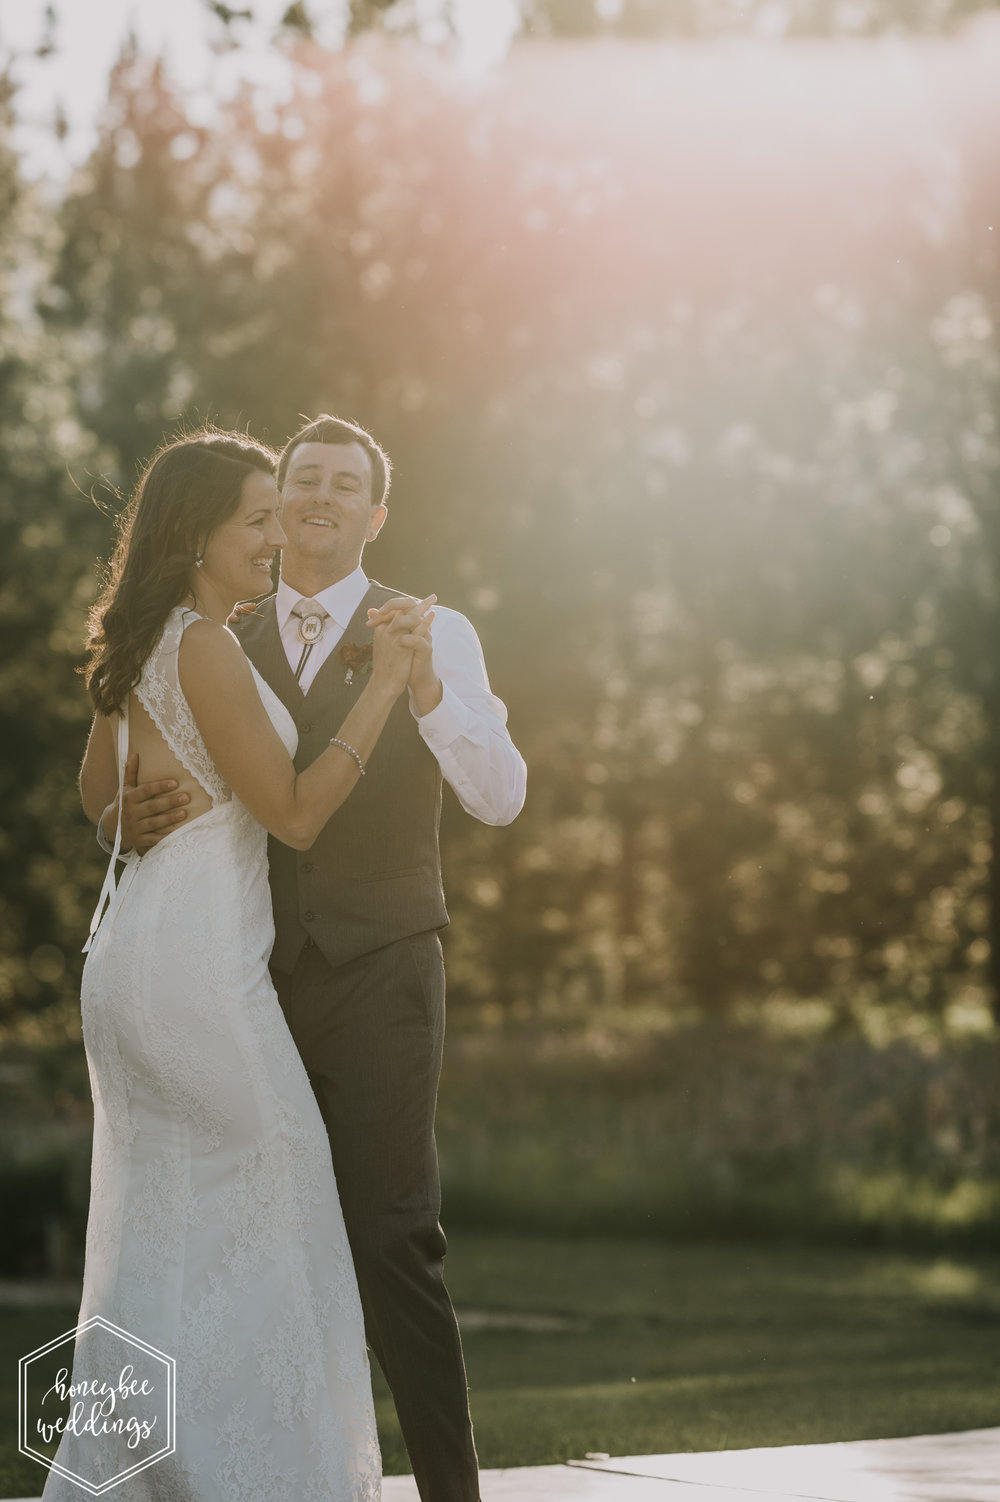 476 White Raven Wedding_Montana Wedding Photographer_Honeybee Weddings_ Meghan Maloney + Arza Hammond 2018-9309.jpg